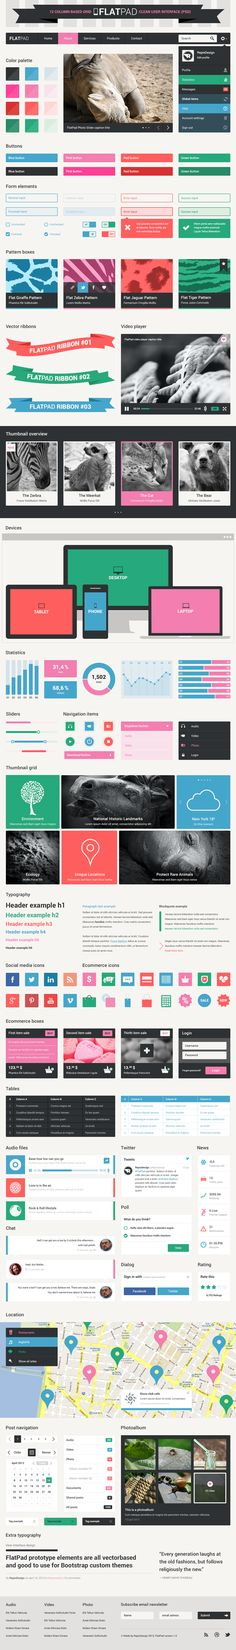 FlatPad, clean user interface (PSD), 12-column Grid by Repix Design, via Behance